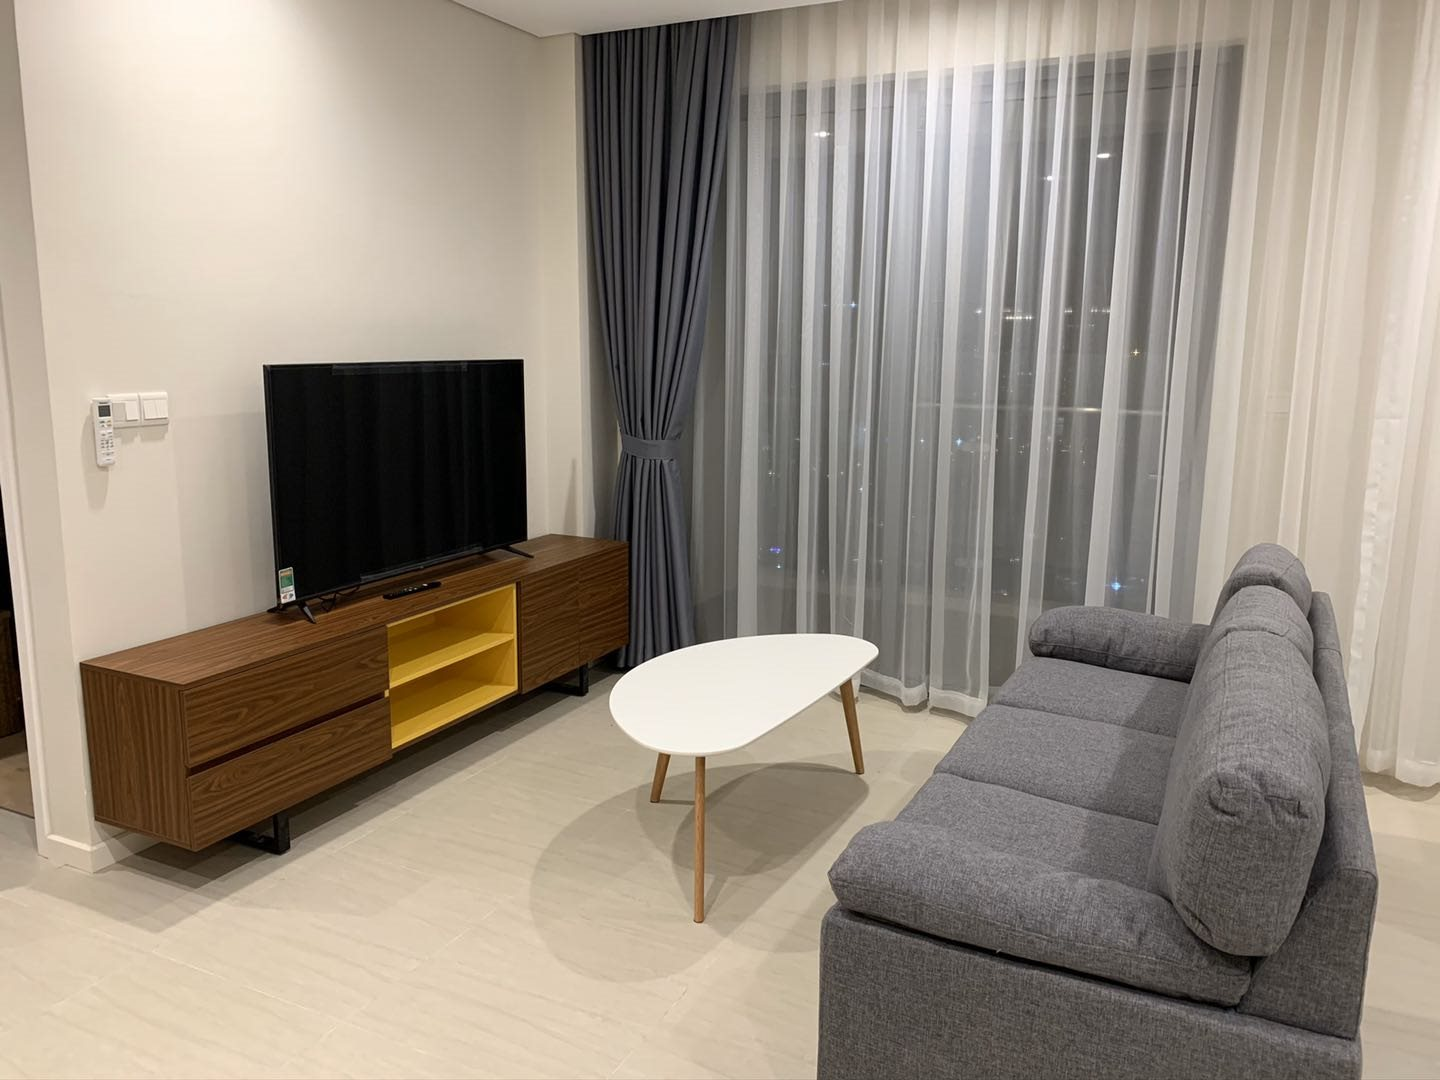 DI0423 - Diamond Island Apartment For Rent & Sale in Ho Chi Minh City - 2 bedroom